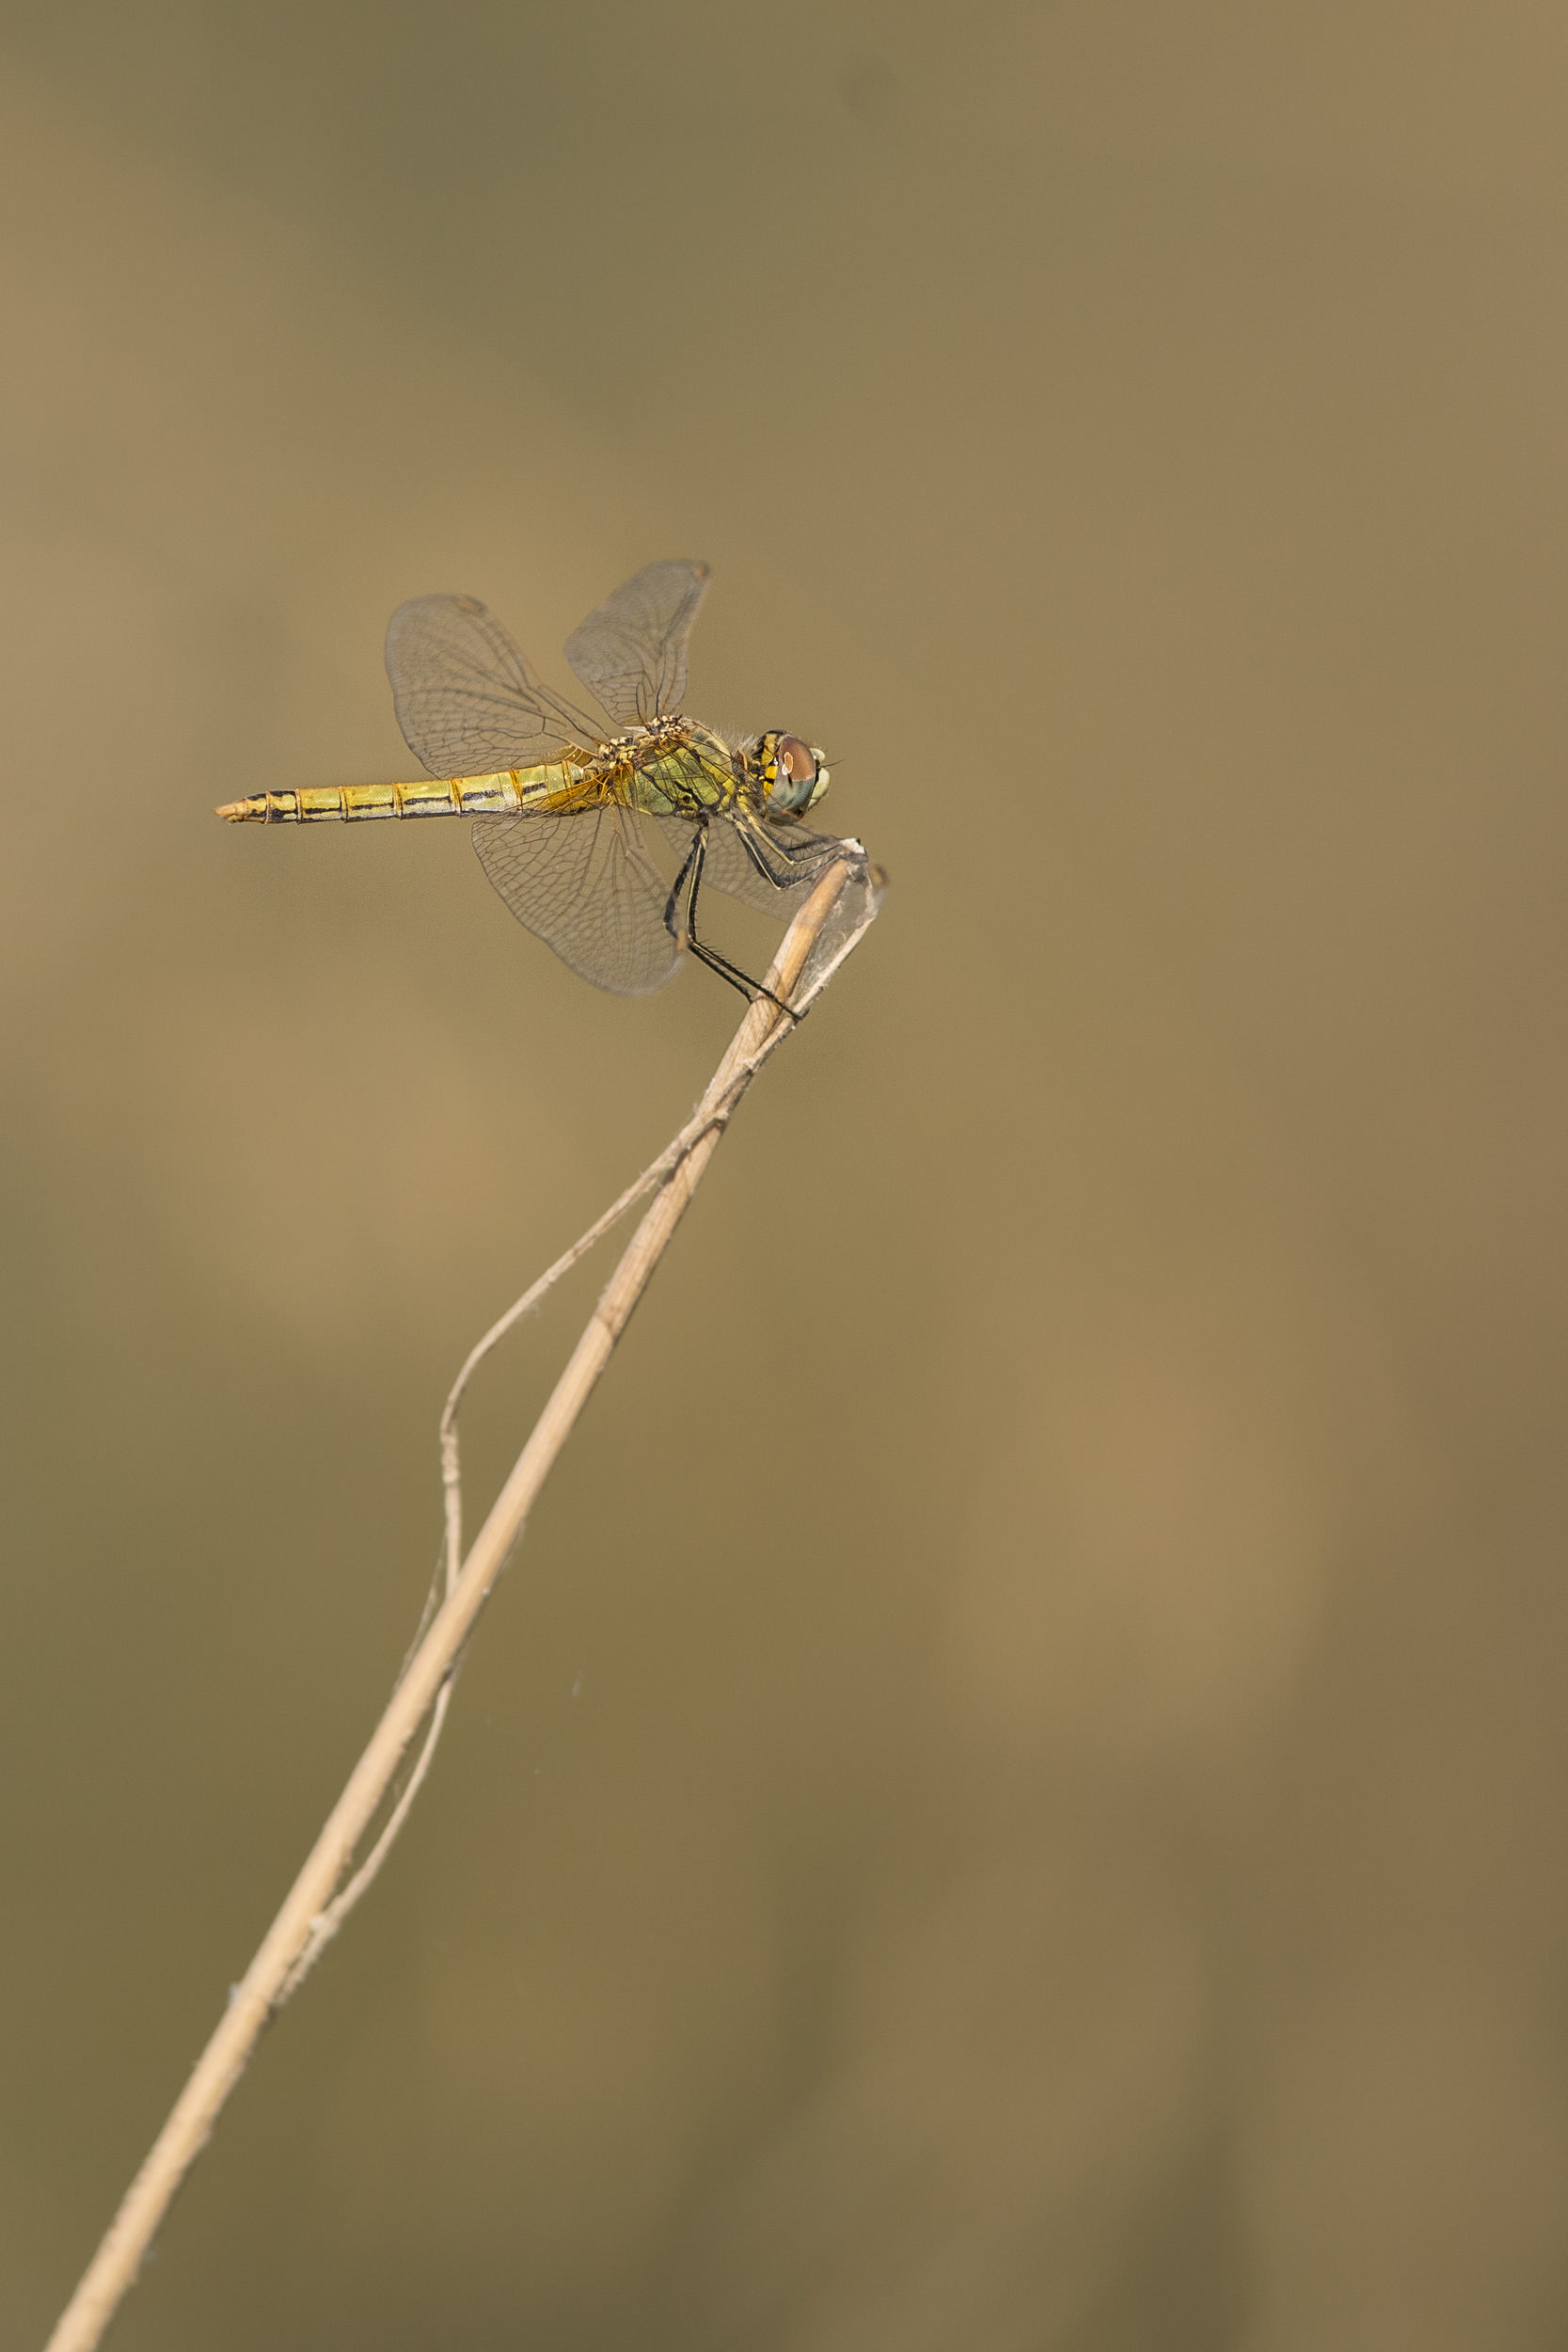 500mm at minimum focusing distance does a reasonable job at macro, without disturbing the subject.